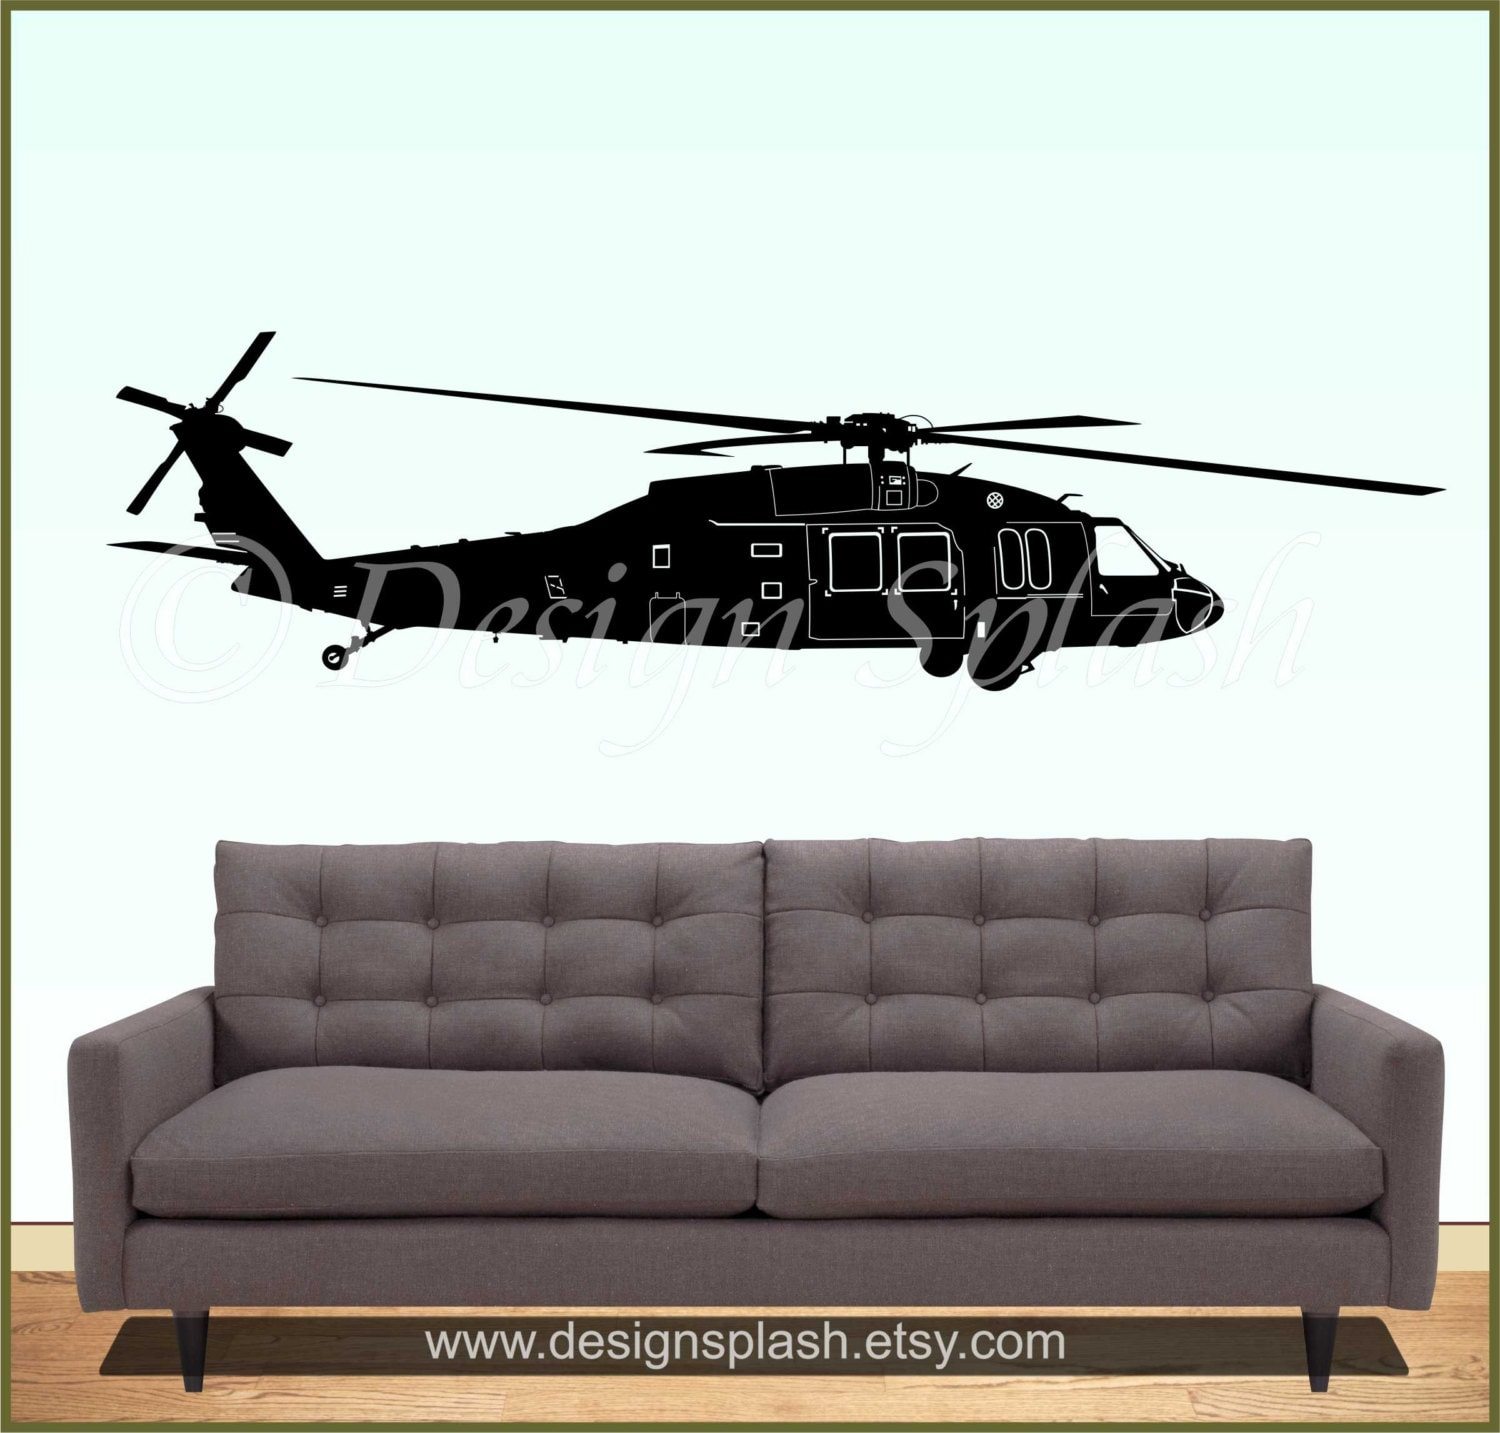 UH 60 BLACKHAWK Helicopter Vinyl Wall Decal M 104